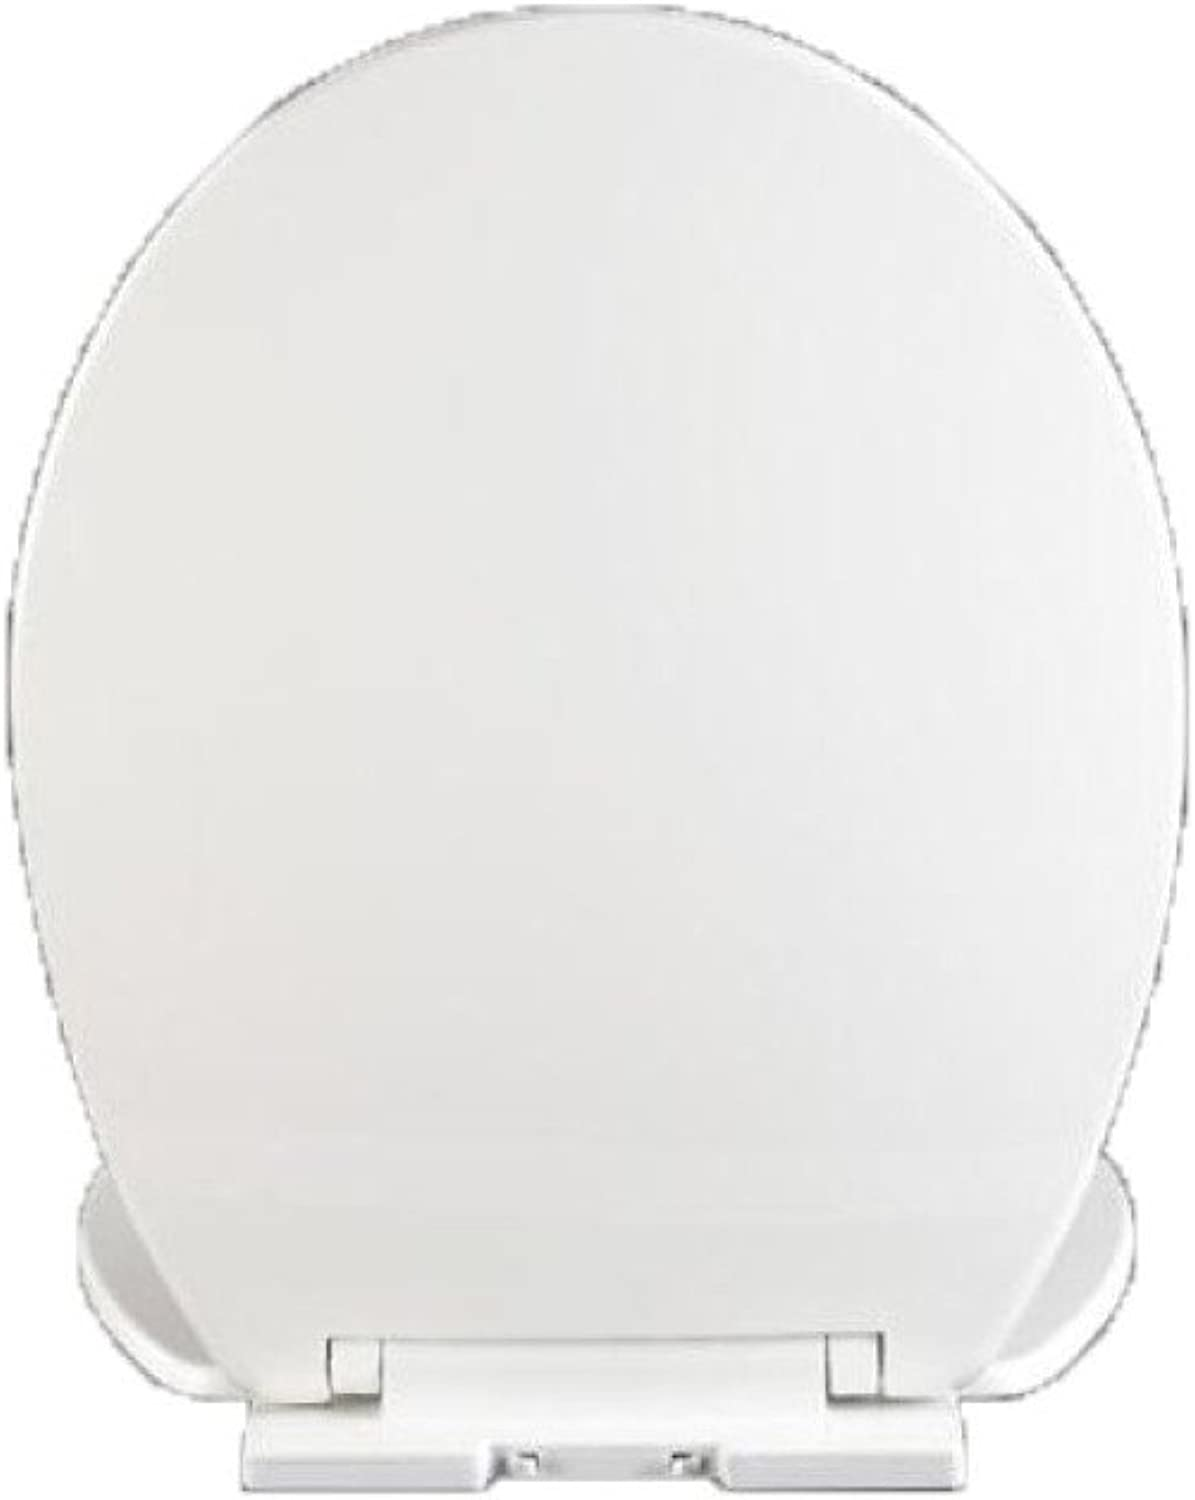 Toilet Seat V U O Soft Close Quick Release White Dual Fixing System,White-42-46  35.6CM